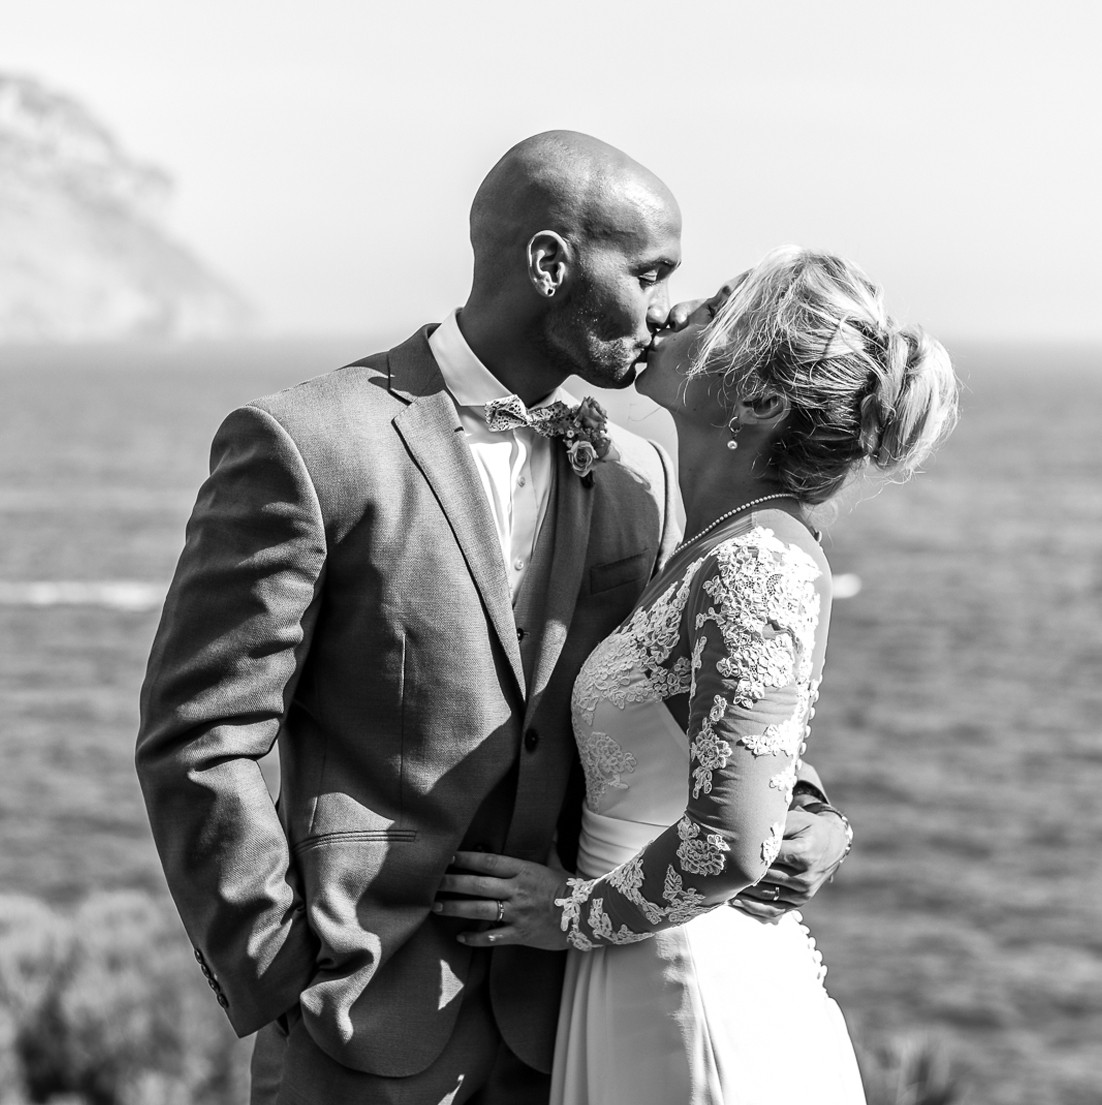 Valentine & Richard - Mariage à Cassis - Union Civil Cassis - Amour - Photographie - Wedding - Wedding planer - Photographe - Evan De Sousa MAriage